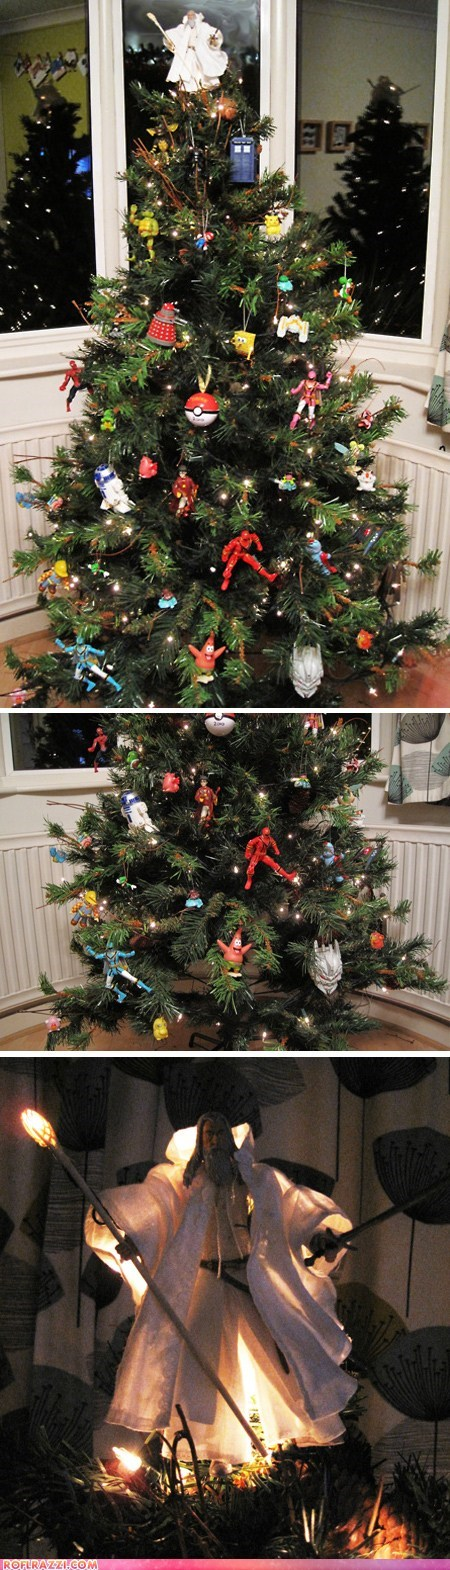 Lord Of The Rings Christmas Ornaments.Pop Culture Christmas Tree Pop Culture Funny Celebrity